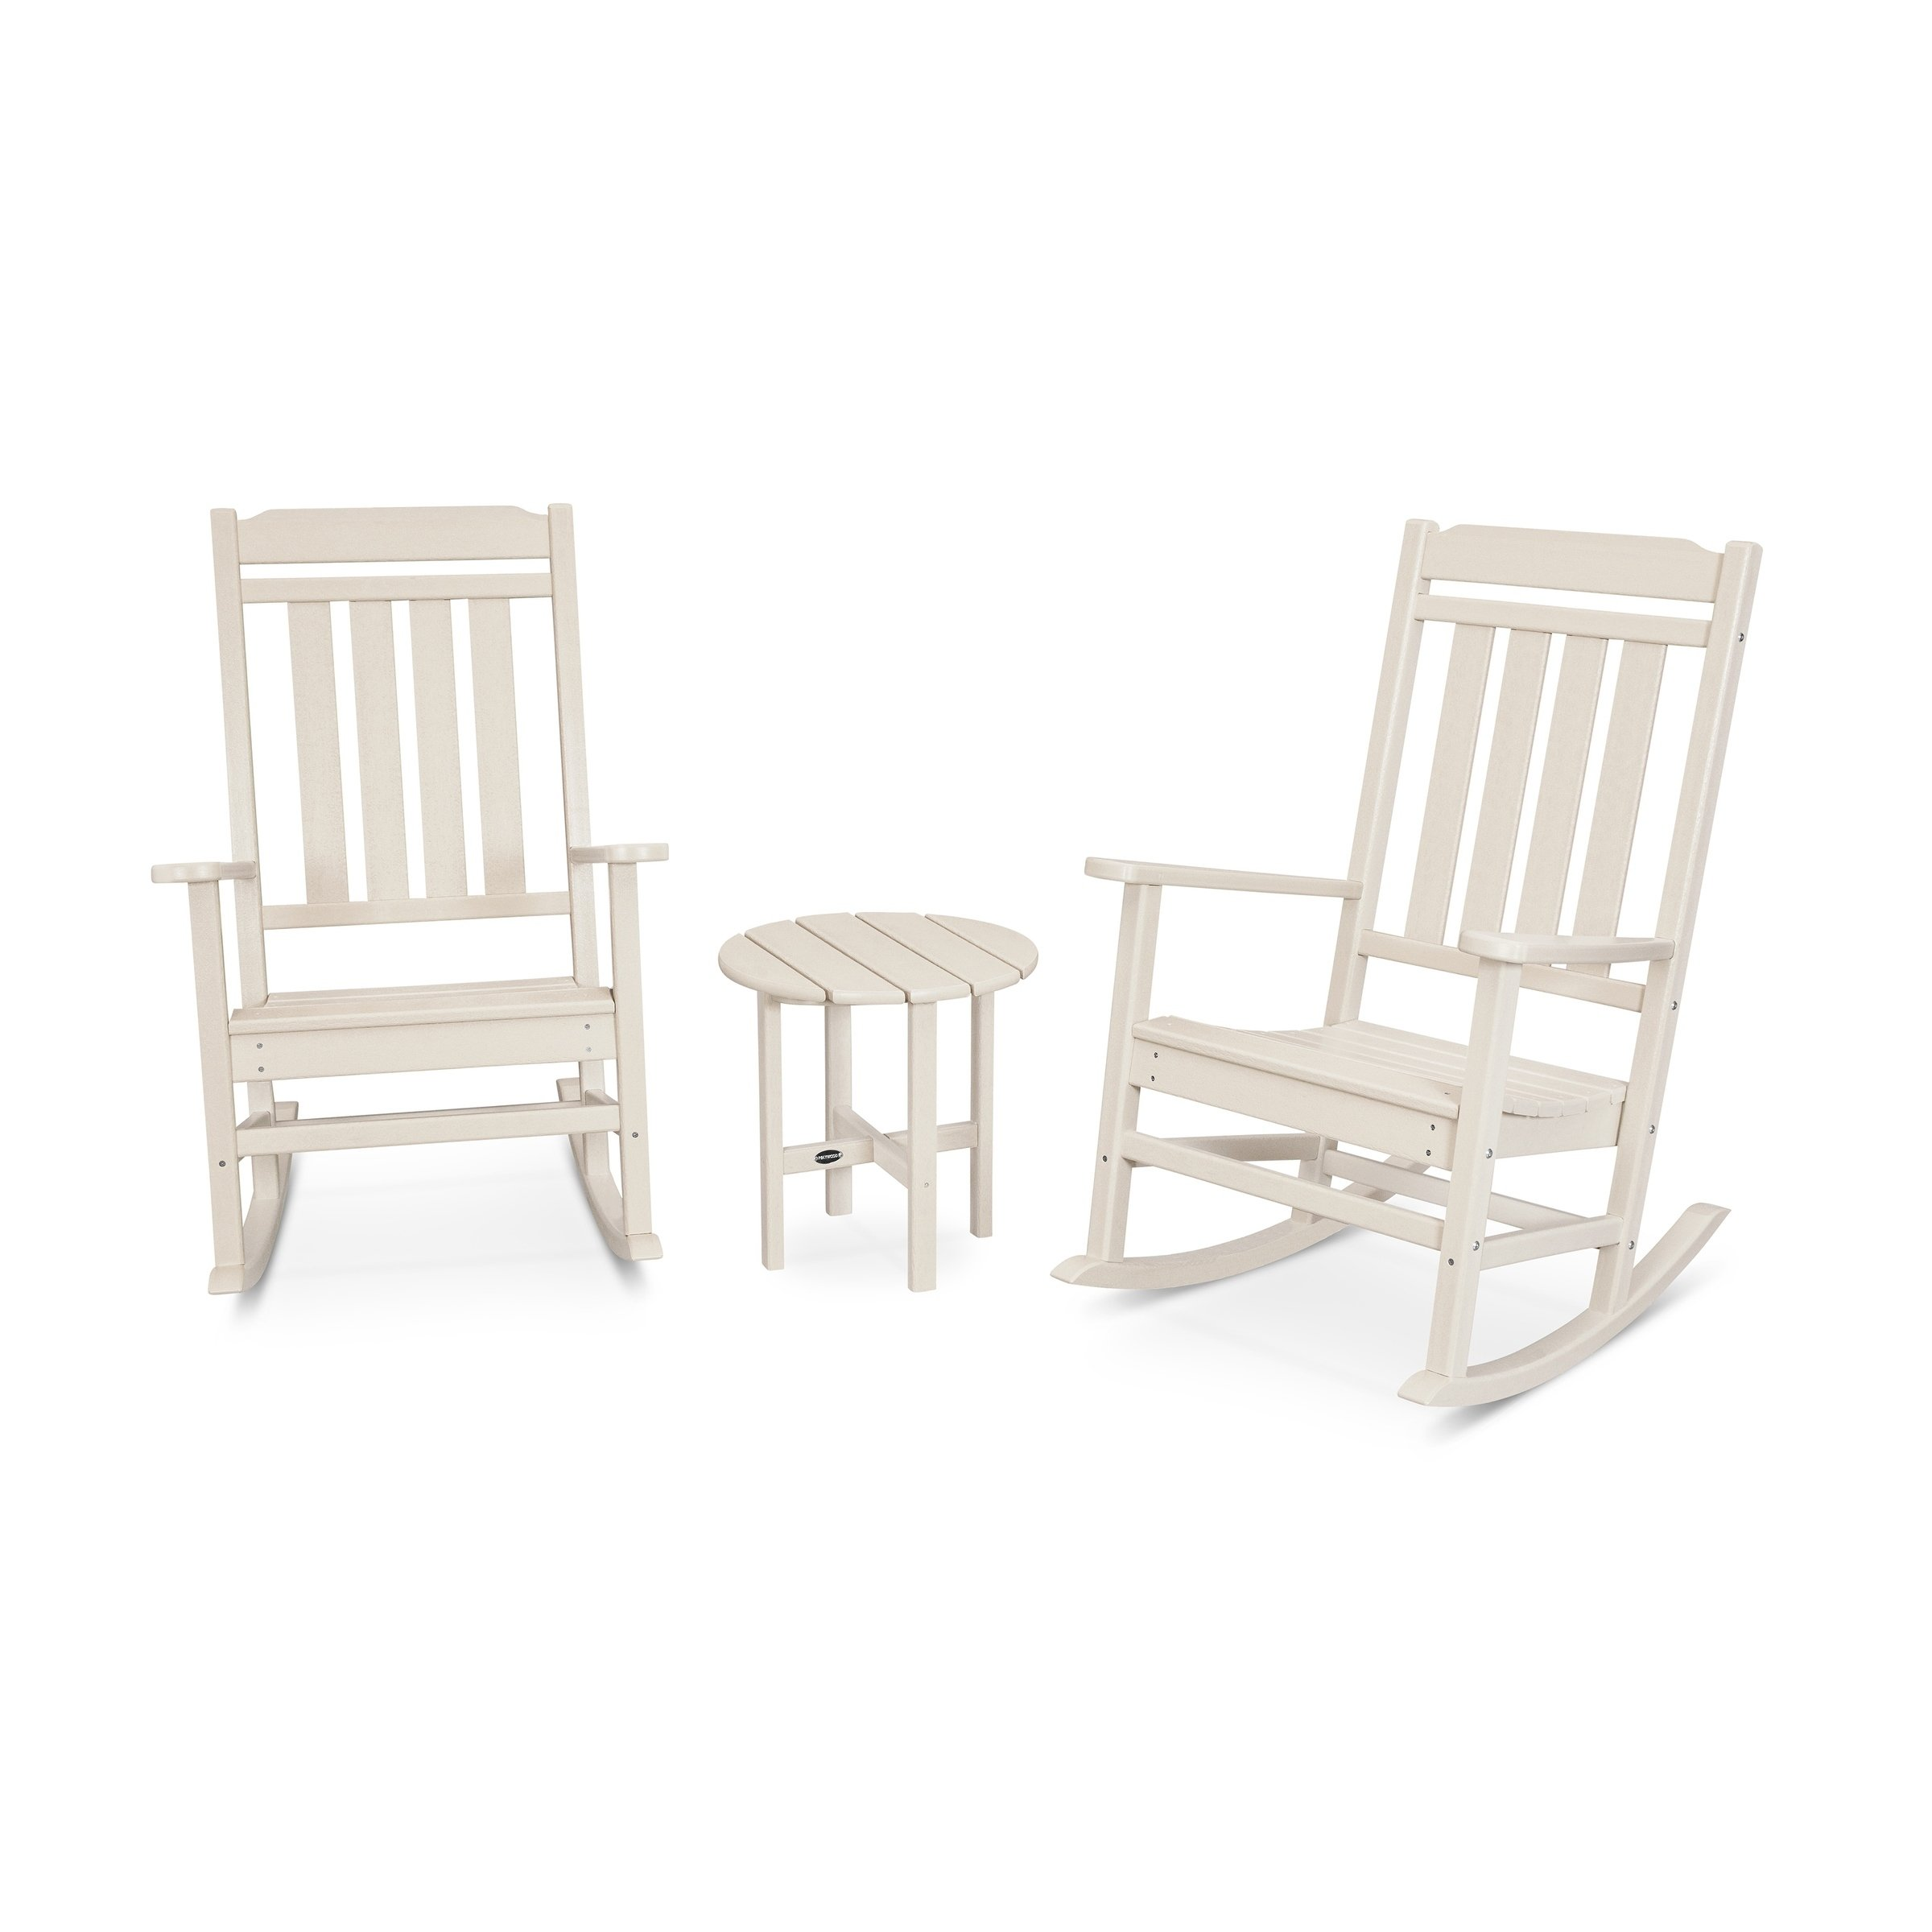 Kahala 3 Piece Porch Rocking Chair Set Assembly Required Beige Plastic Patio Furniture Rocking Chair Porch Rocking Chair Rocking Chair Set